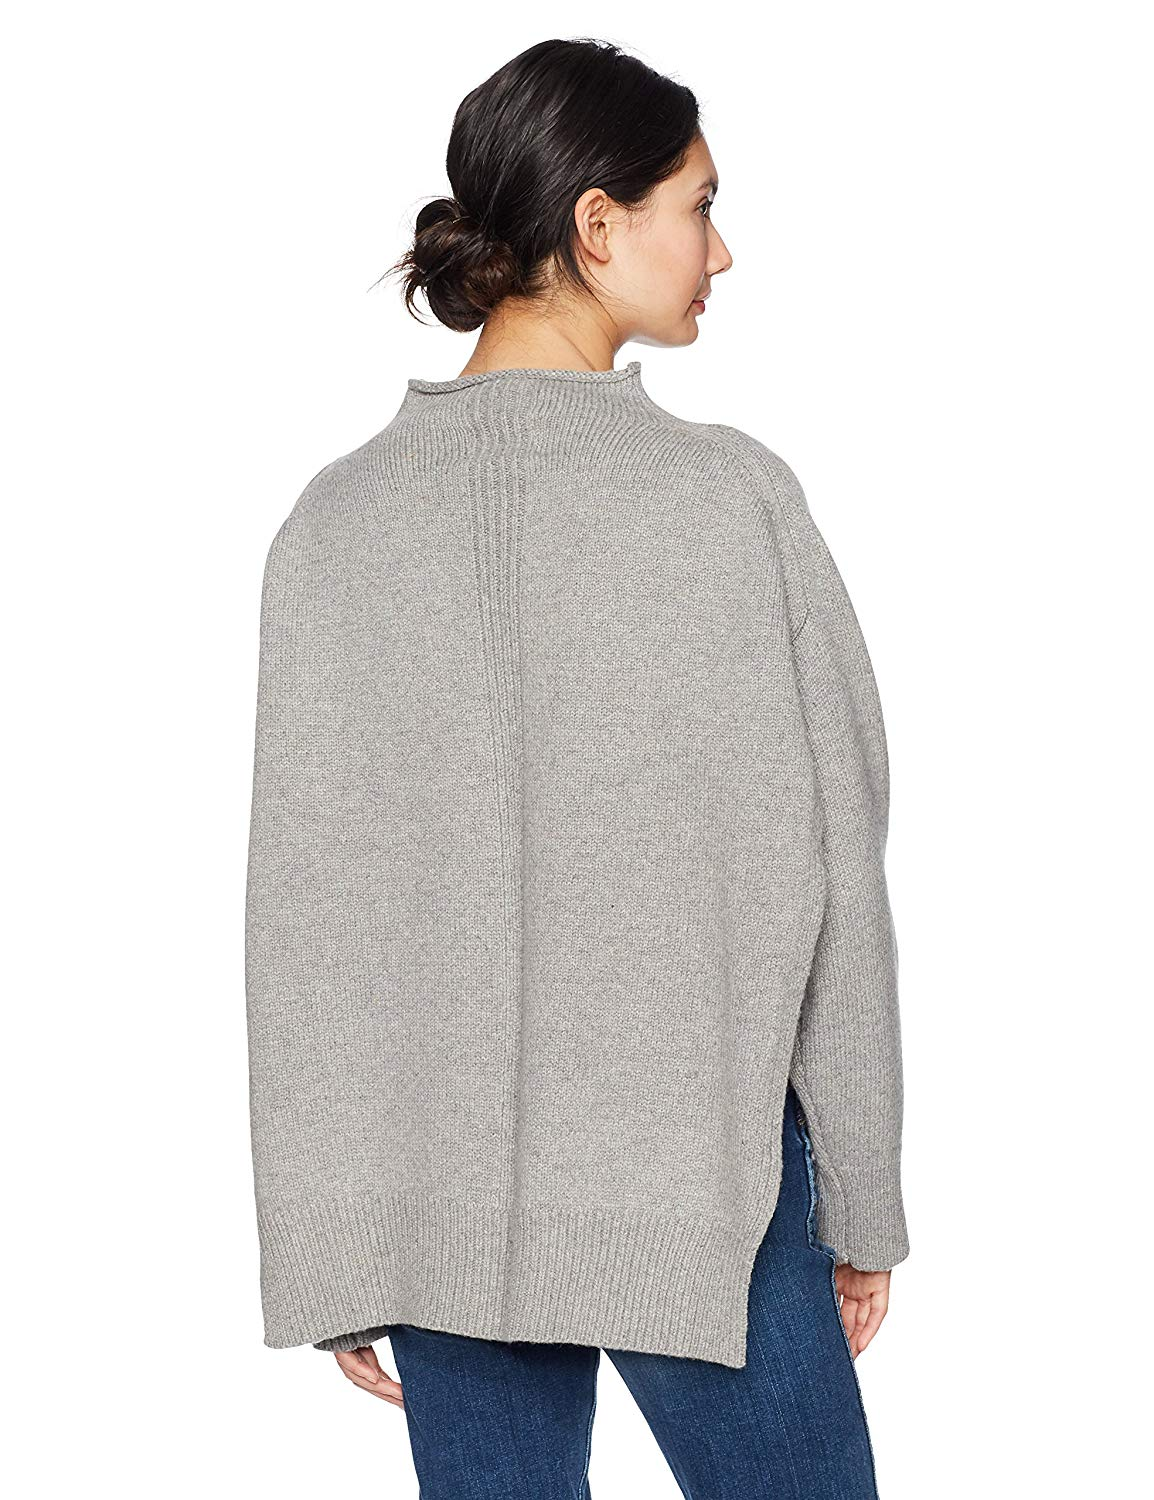 Lifestyle blogger Lexi of Glitter, Inc. shares her favorite weekly finds from around the web, including this MOON RIVER Women's Mock Neck Boxy Boyfriend Sweater | glitterinc.com | @glitterinc